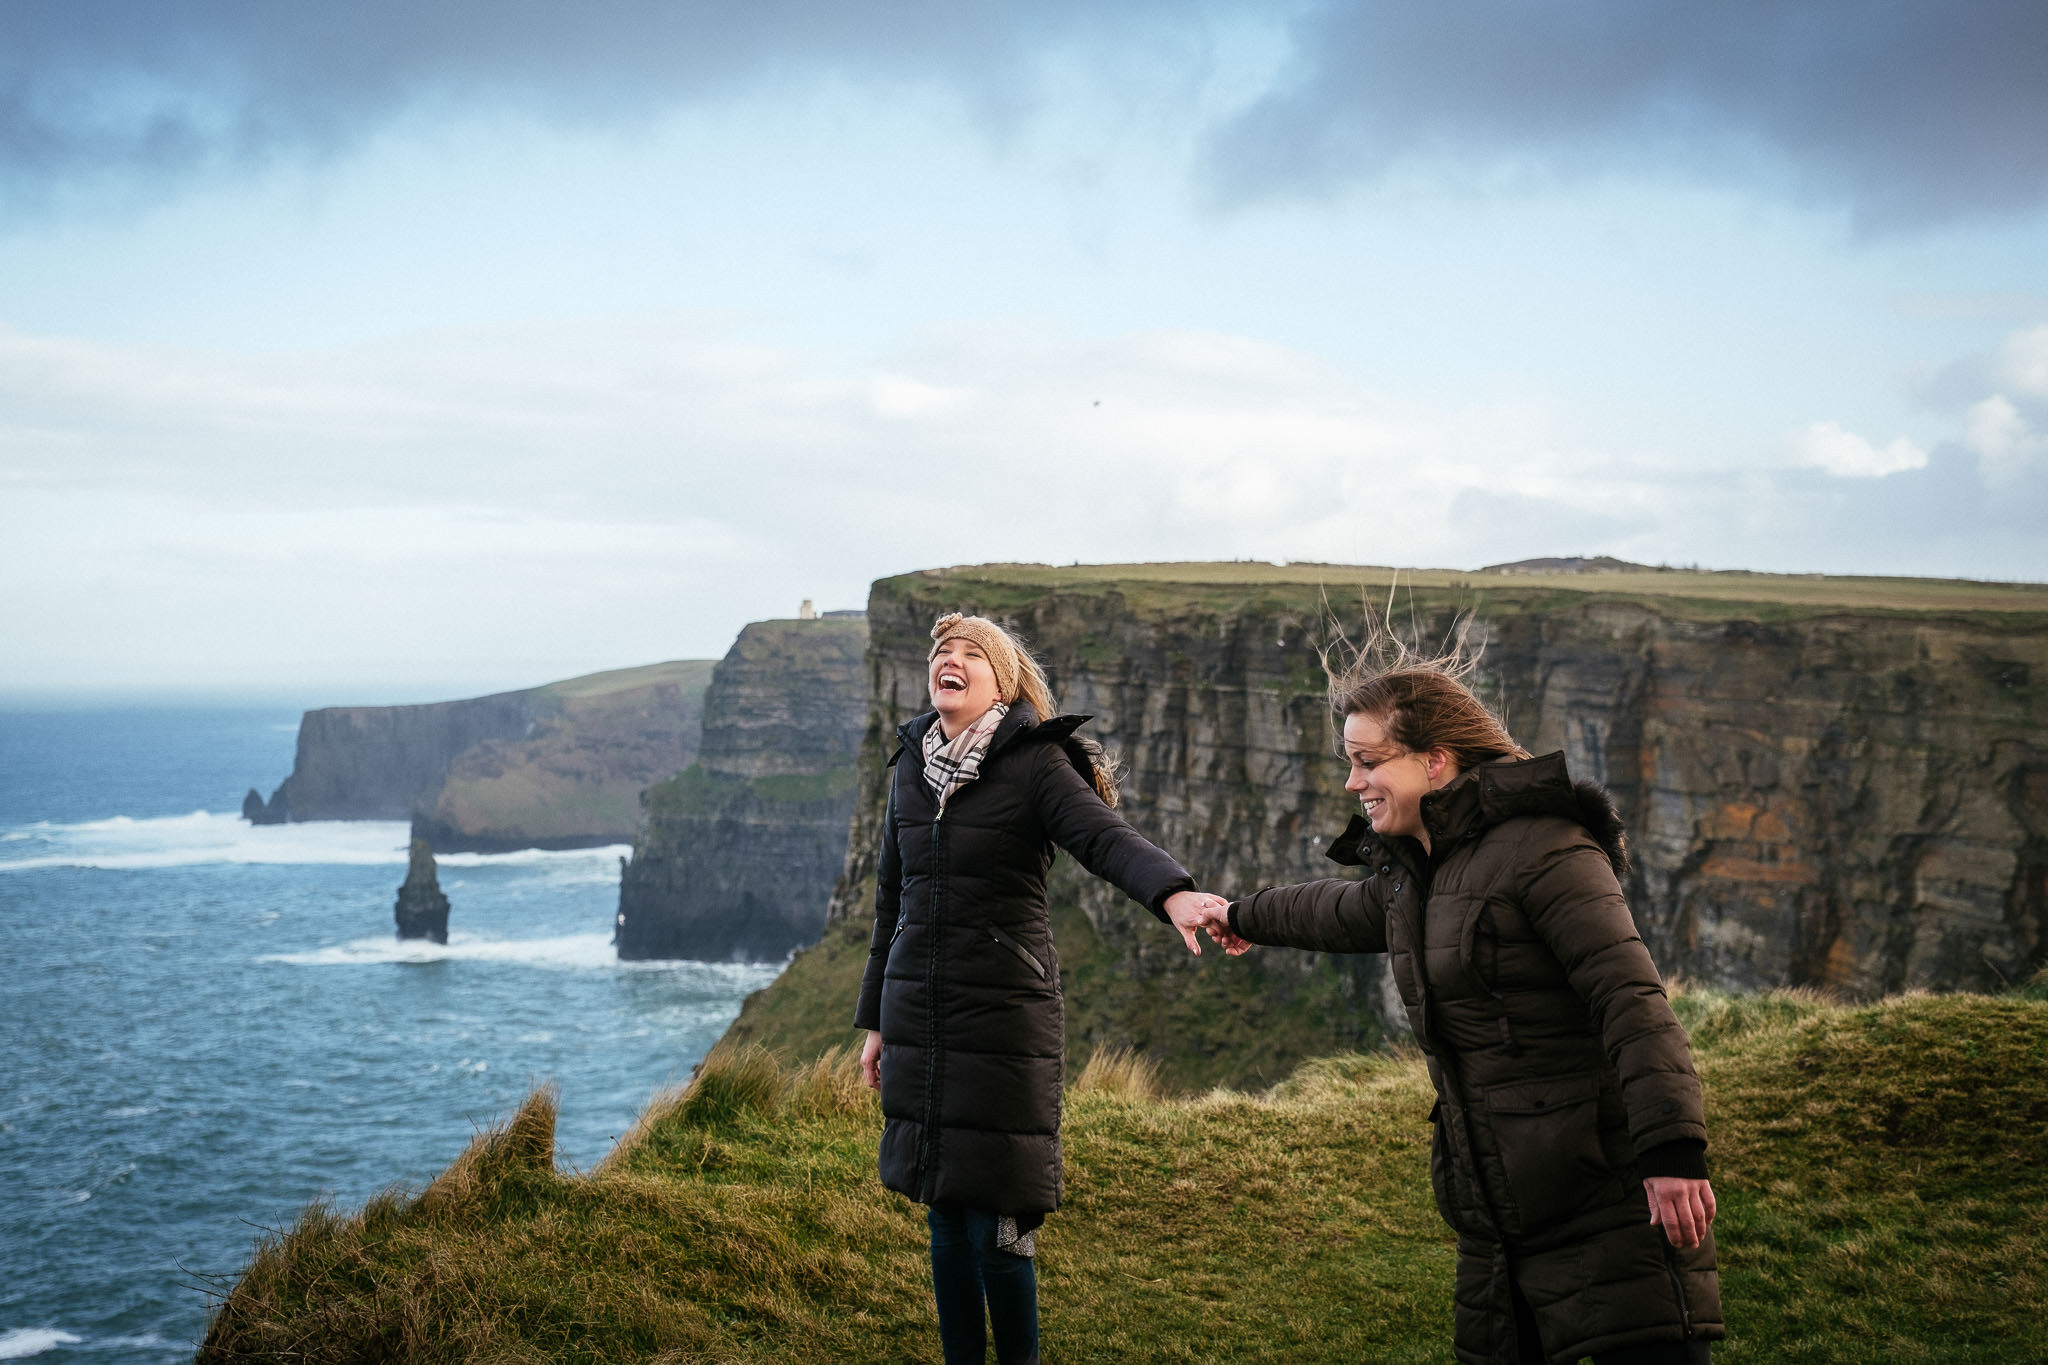 LGBT couple laughing at the Cliffs of Moher Ireland